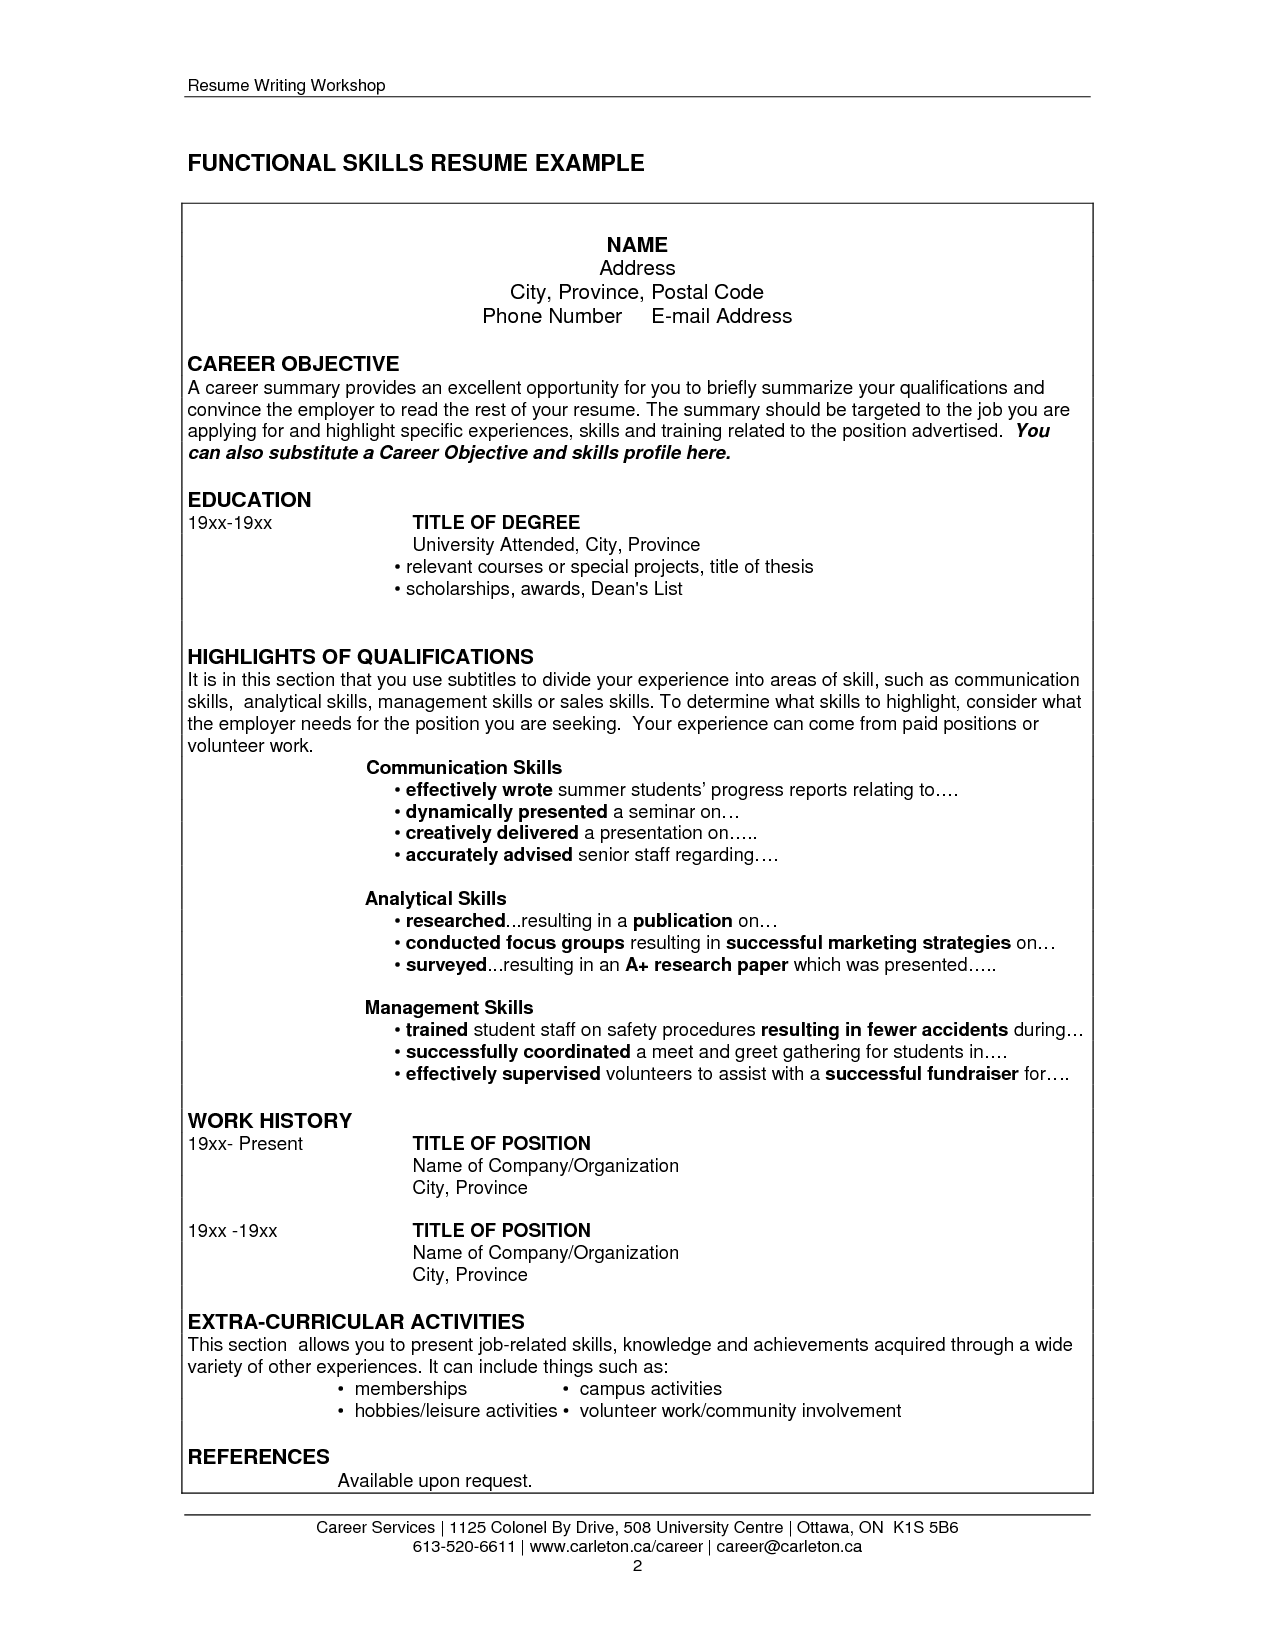 Resume Templates Tamu Mesmerizing Image Result For Skills Resume Format  Business  Pinterest